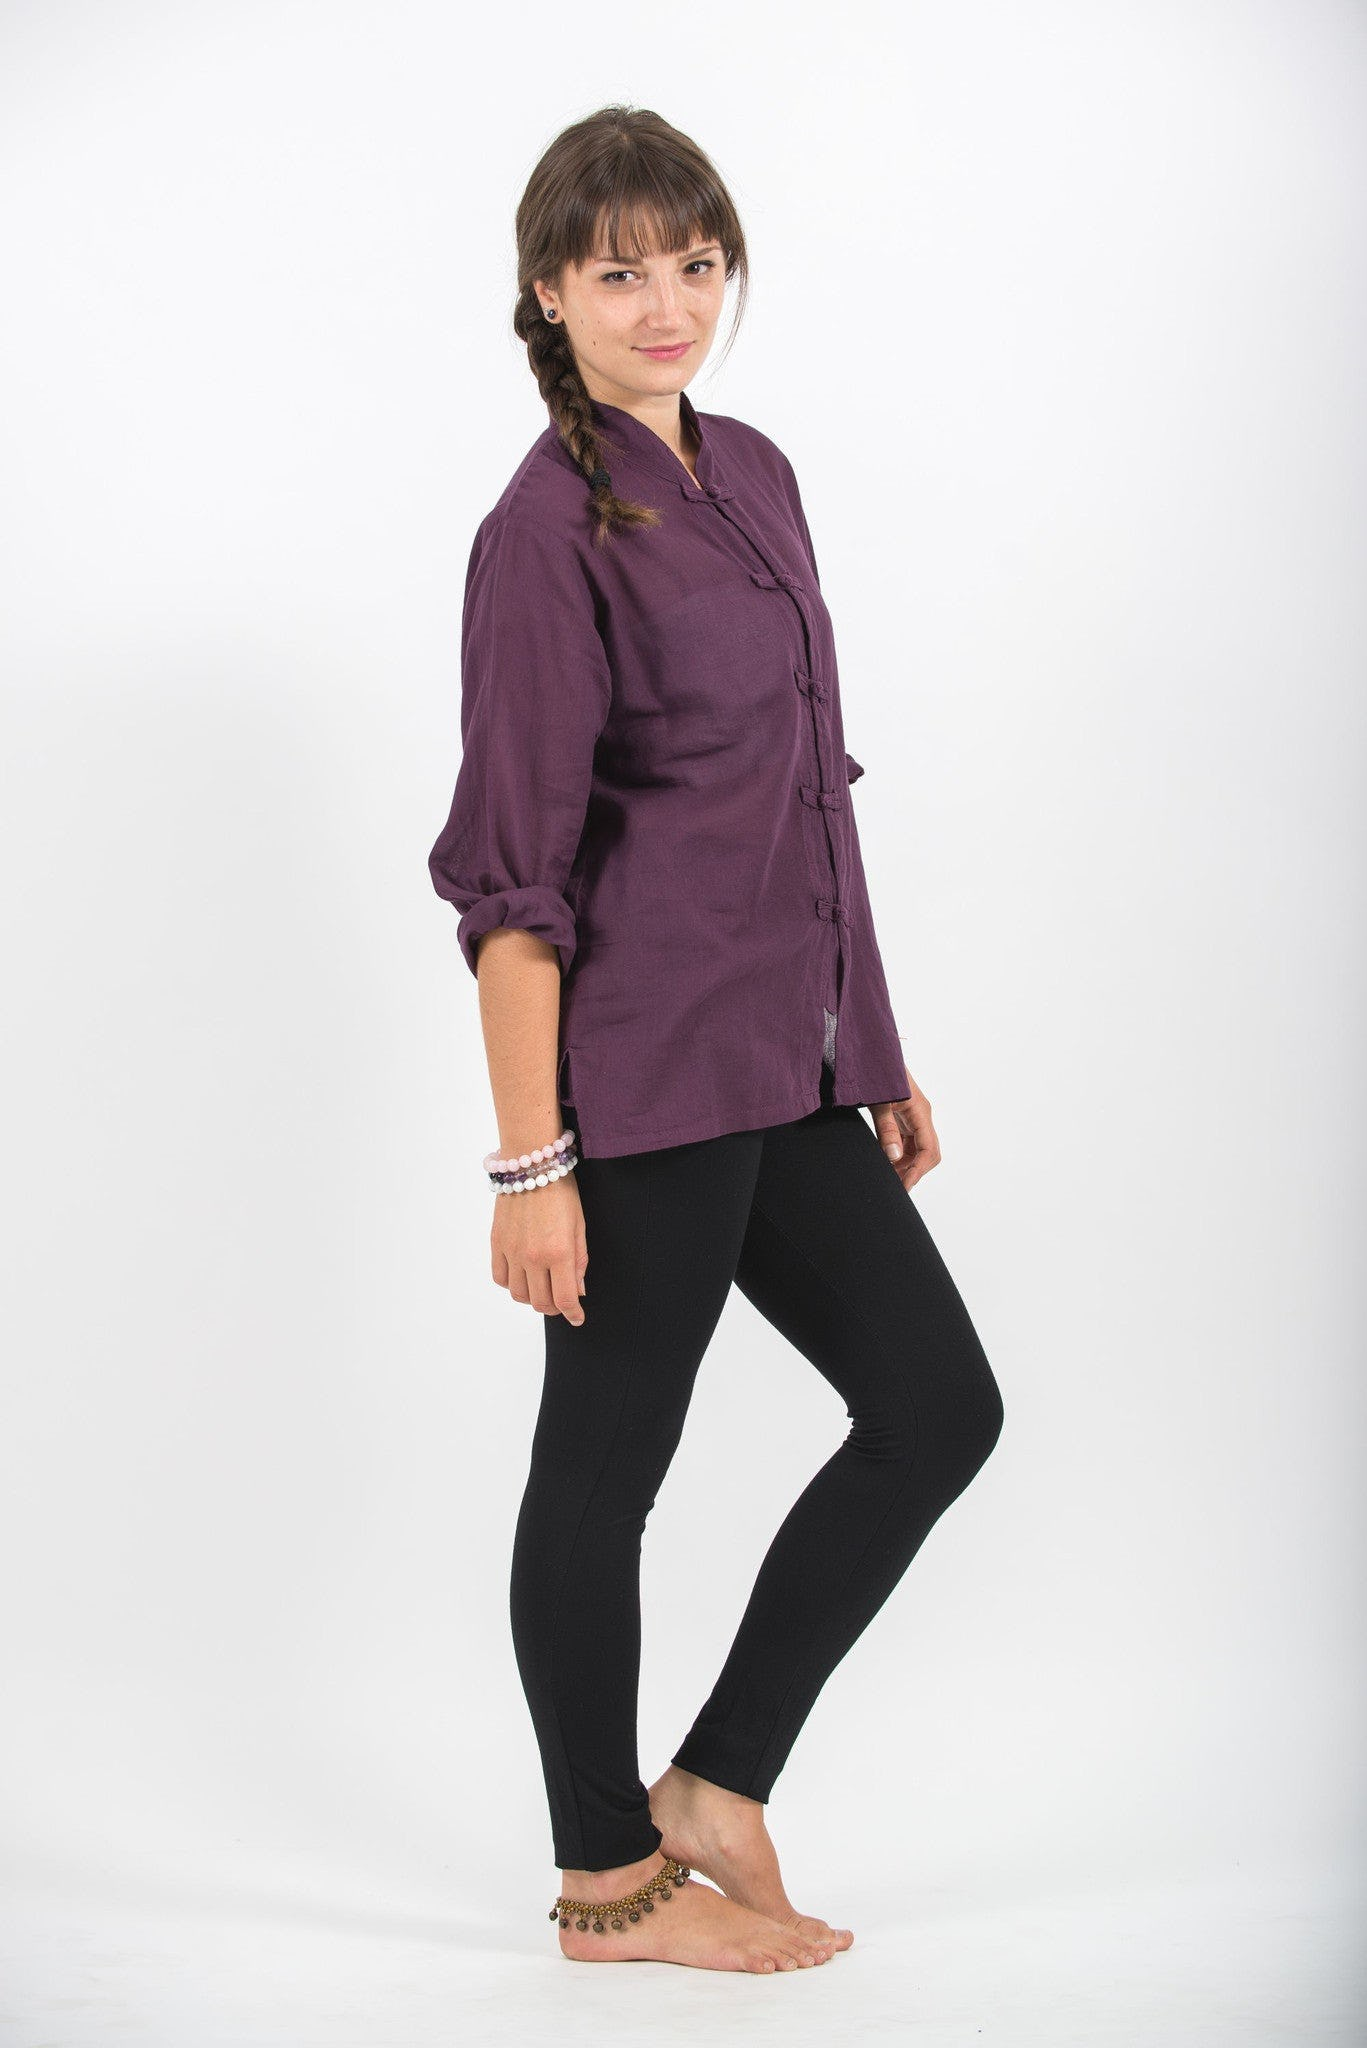 Womens Yoga Shirts Chinese Collared In Purple Harem Pants